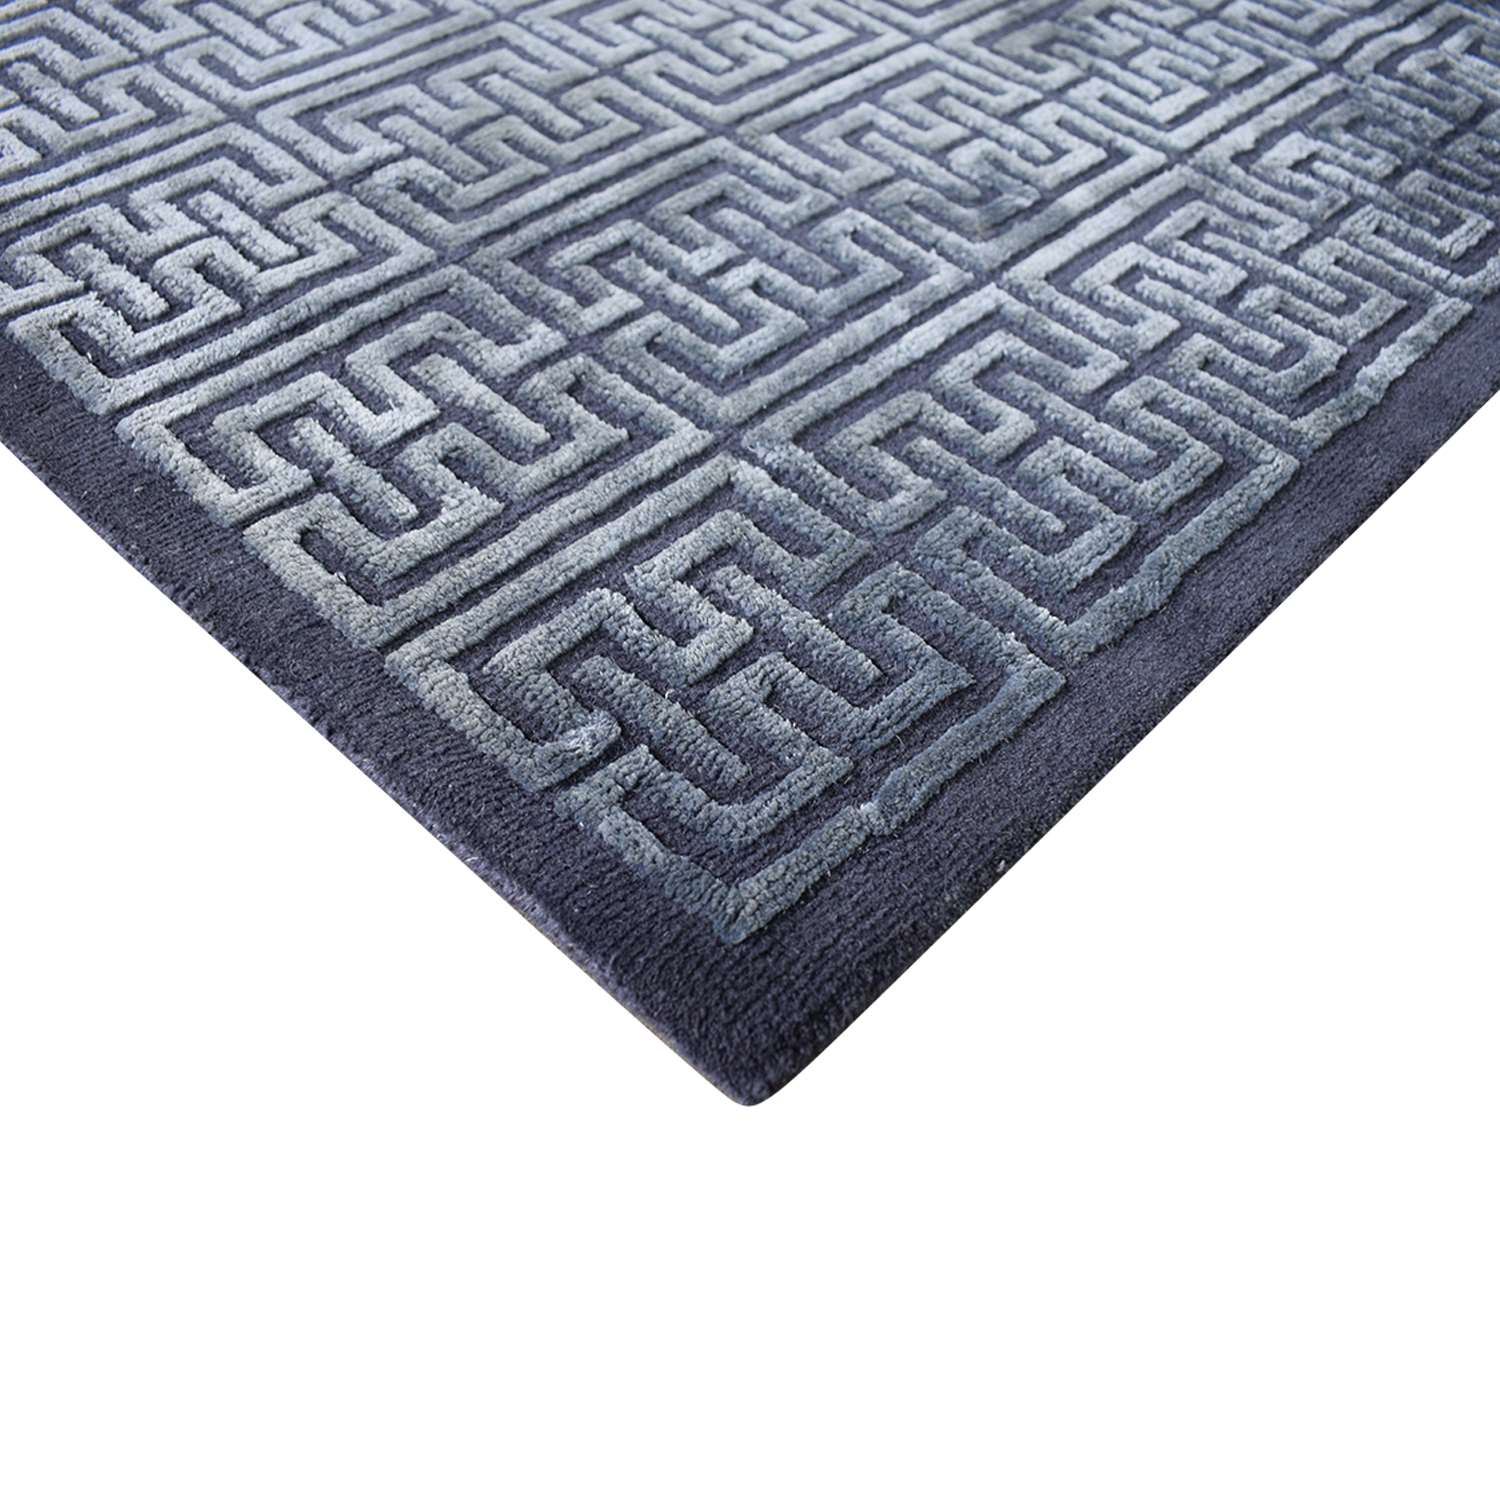 Nitzan Home Nitzan Home Collection Handknotted Silk and Wool Geometric Rug dimensions